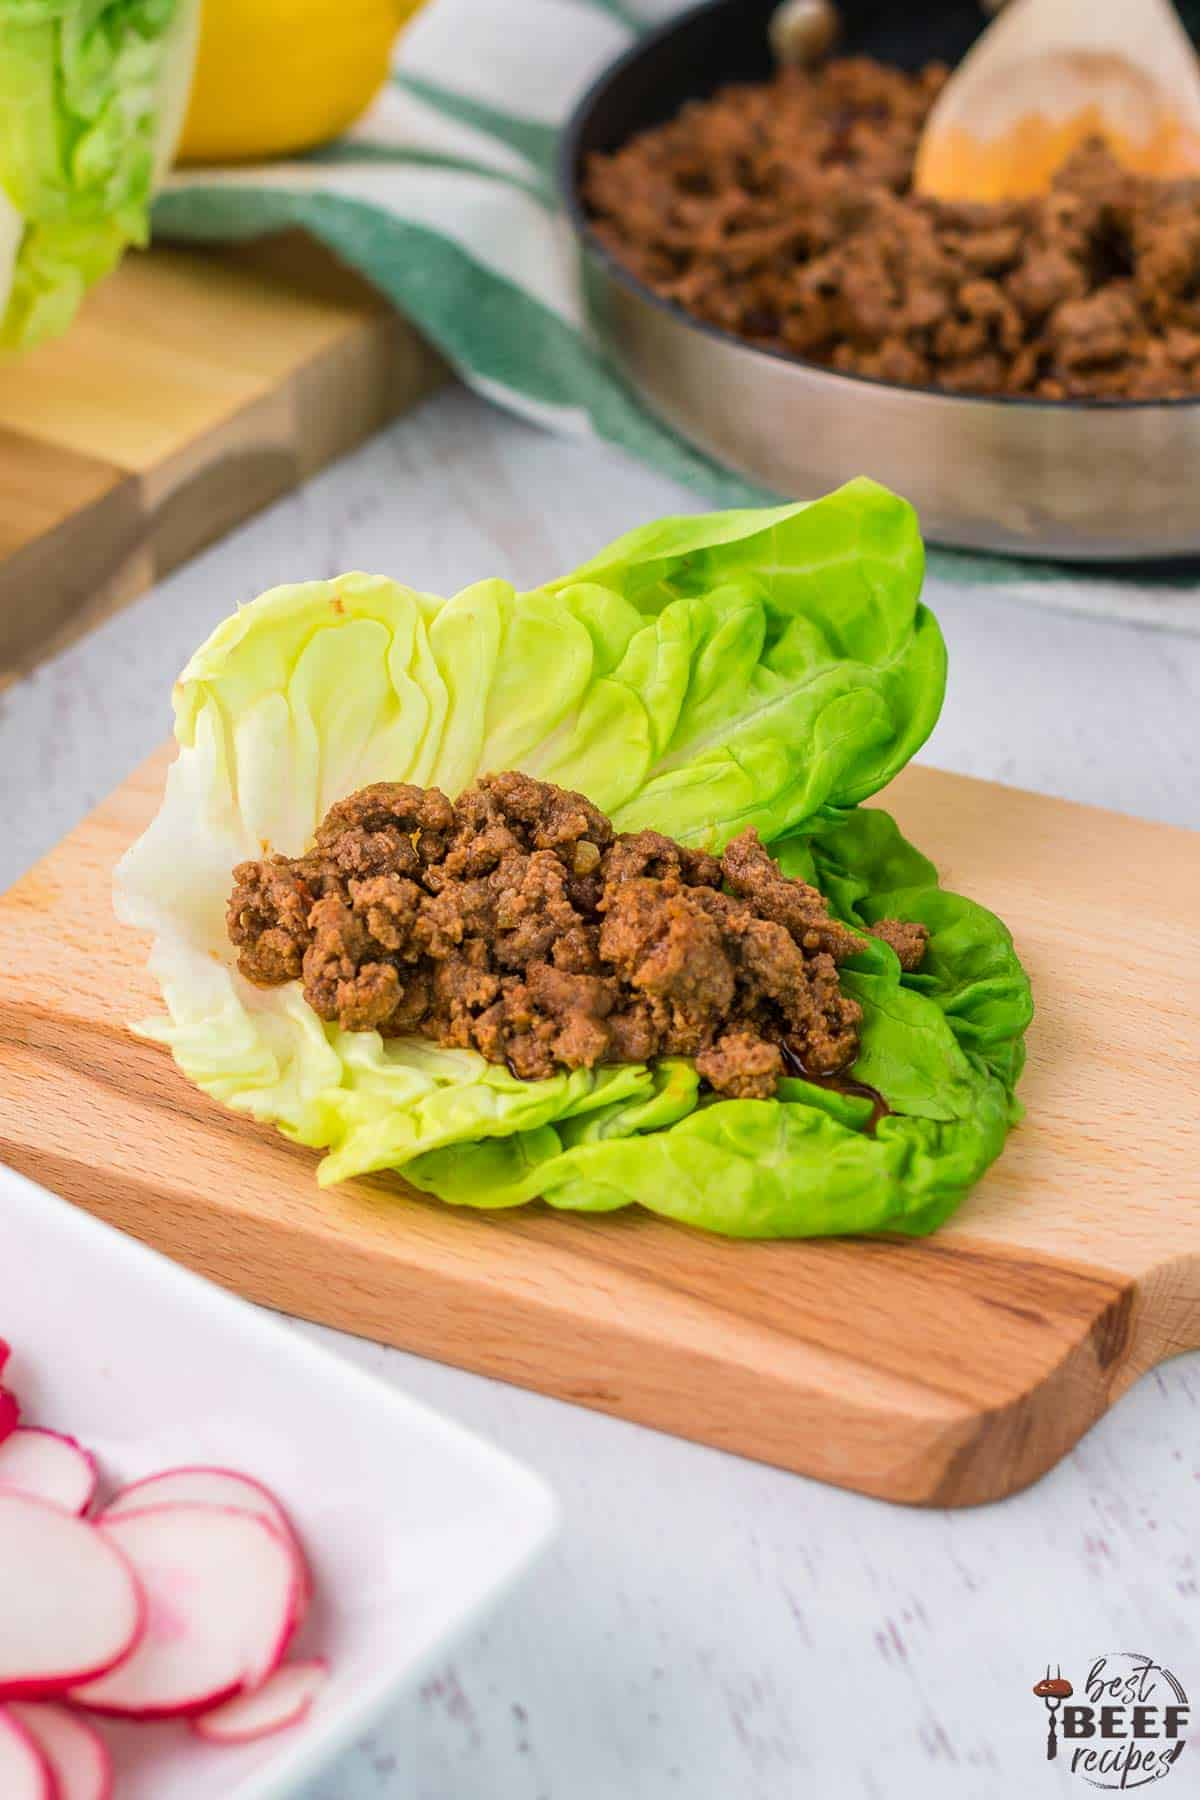 Filled beef lettuce wrap sitting on serving board